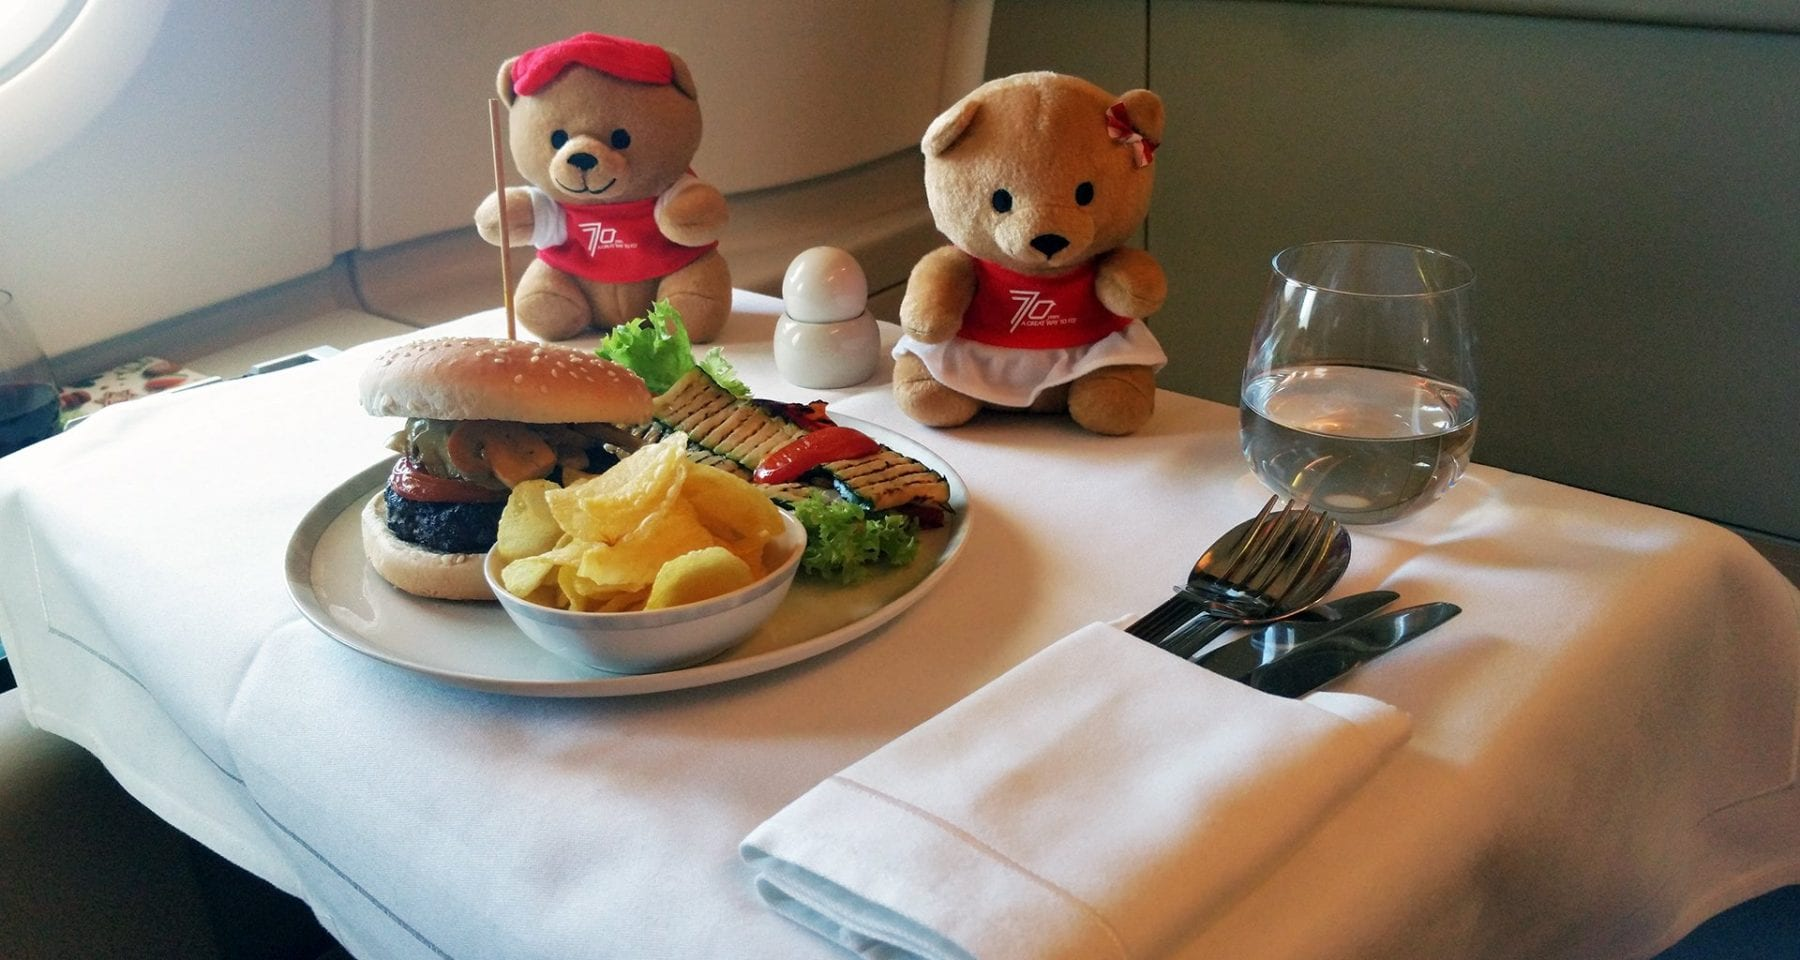 ingapore airlines business class kids burger meals